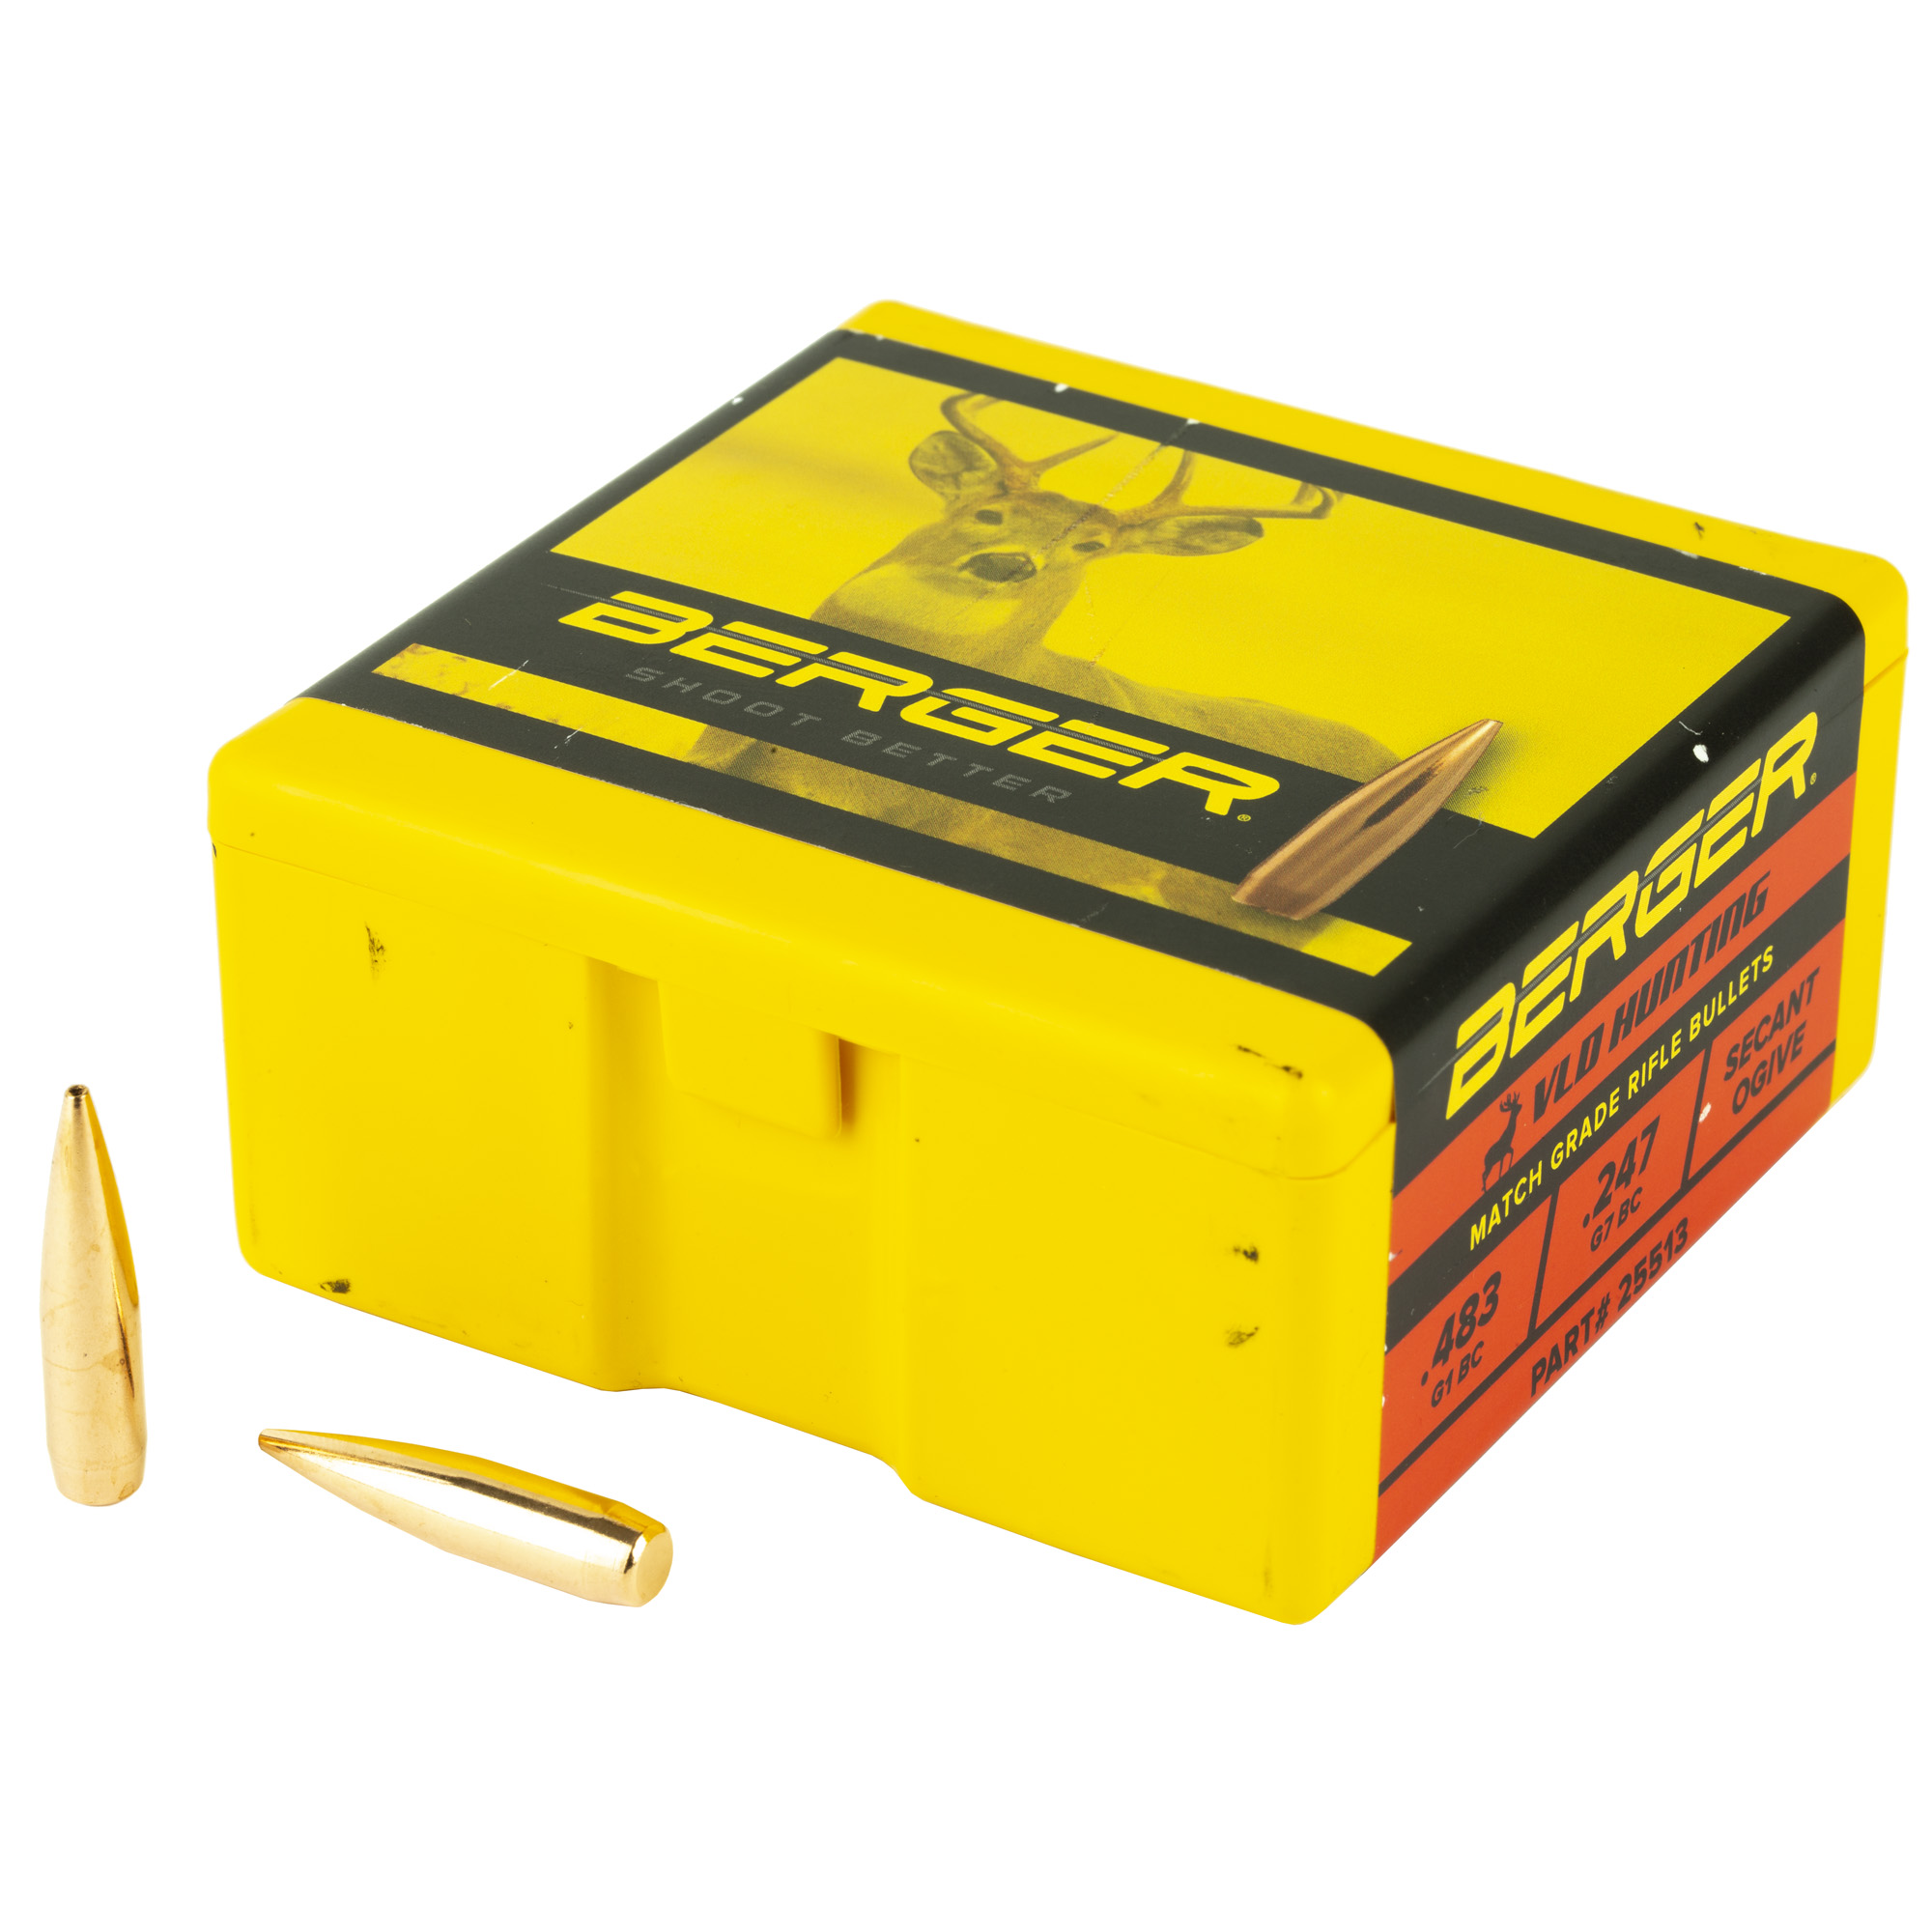 Berger .257 115g Hunt Vld 100ct